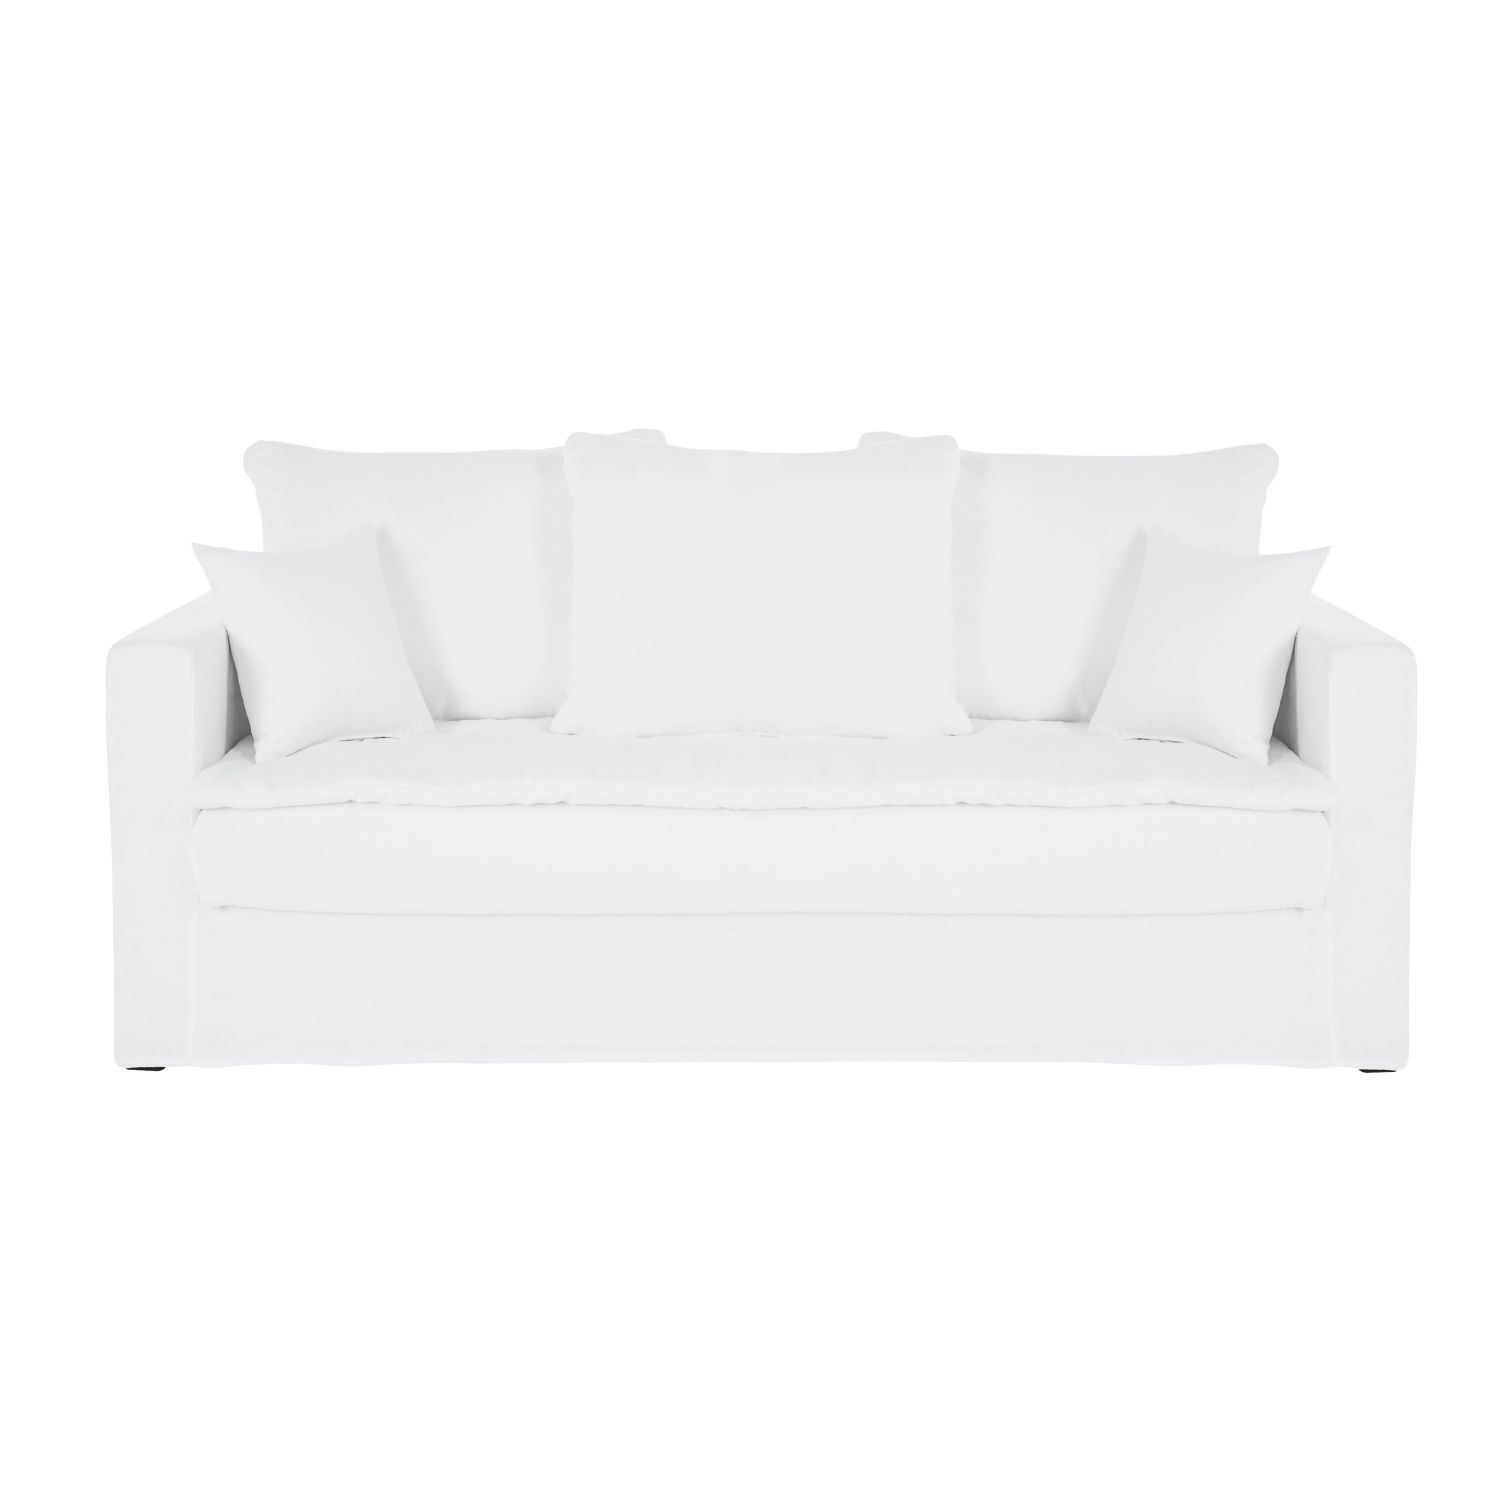 White 3 Seater Washed Linen Sofa Bed In 2019 Furniture Linen